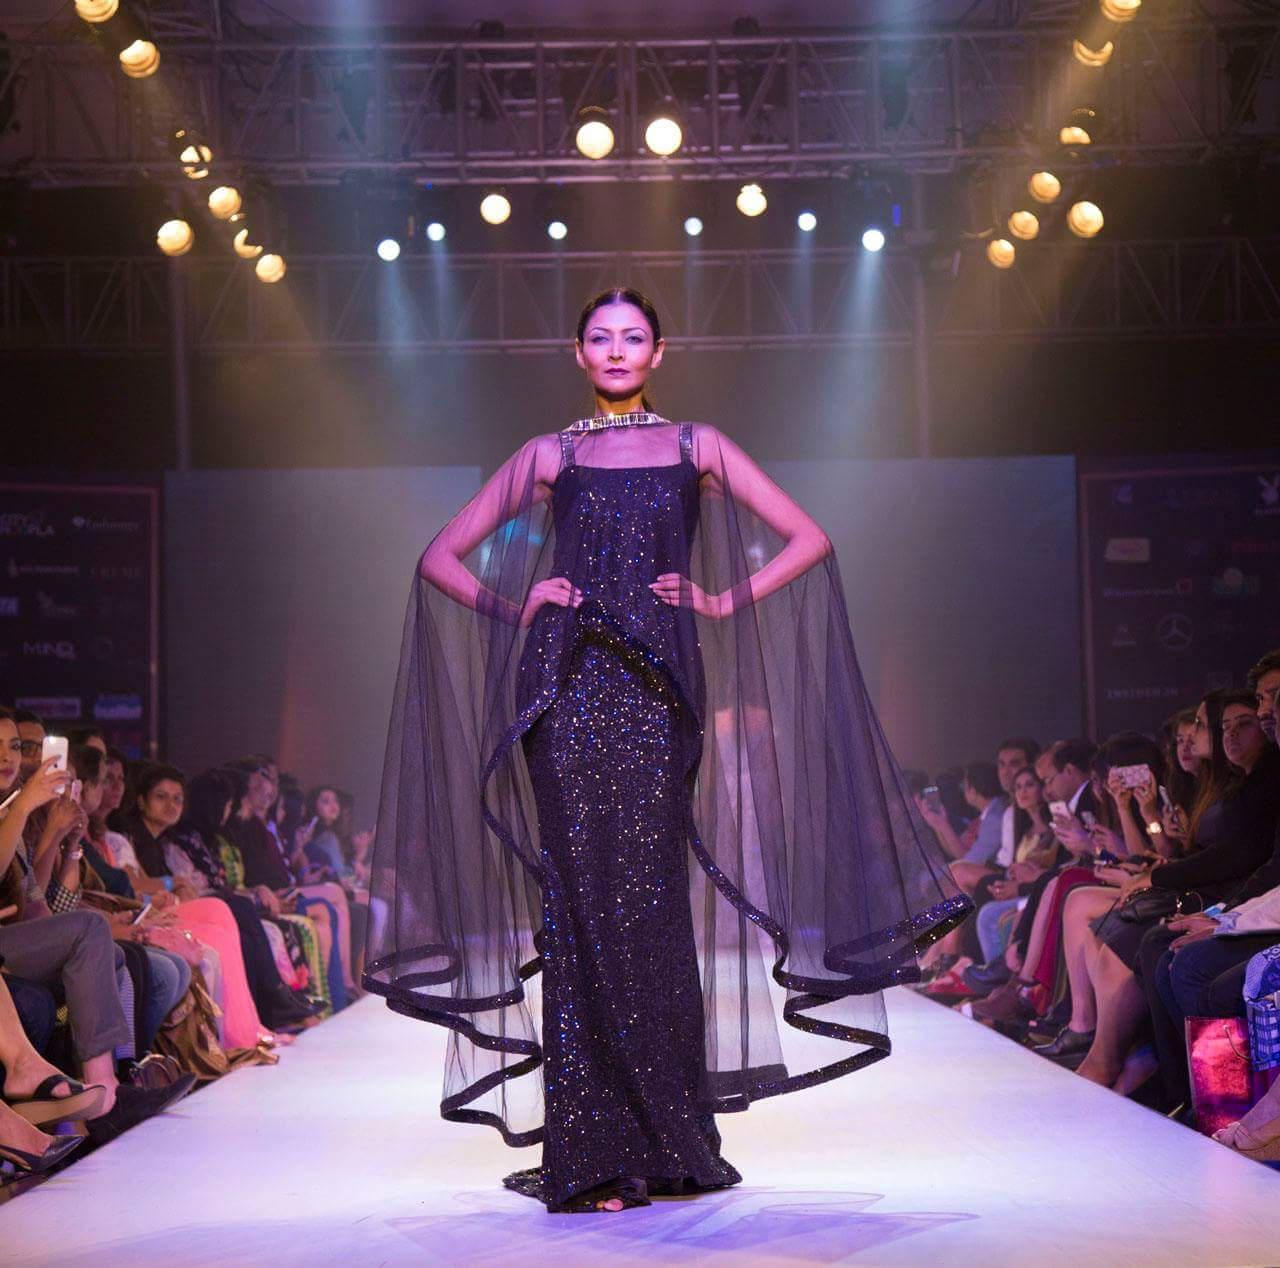 Creating #blackmagic at @pune_fashion_week runway as this sparkling #ritz gown with tulle drape @labelnityabajaj makes an impact #bold #fierce #labelnityabajaj #comingsoon at www.nityabajaj.com